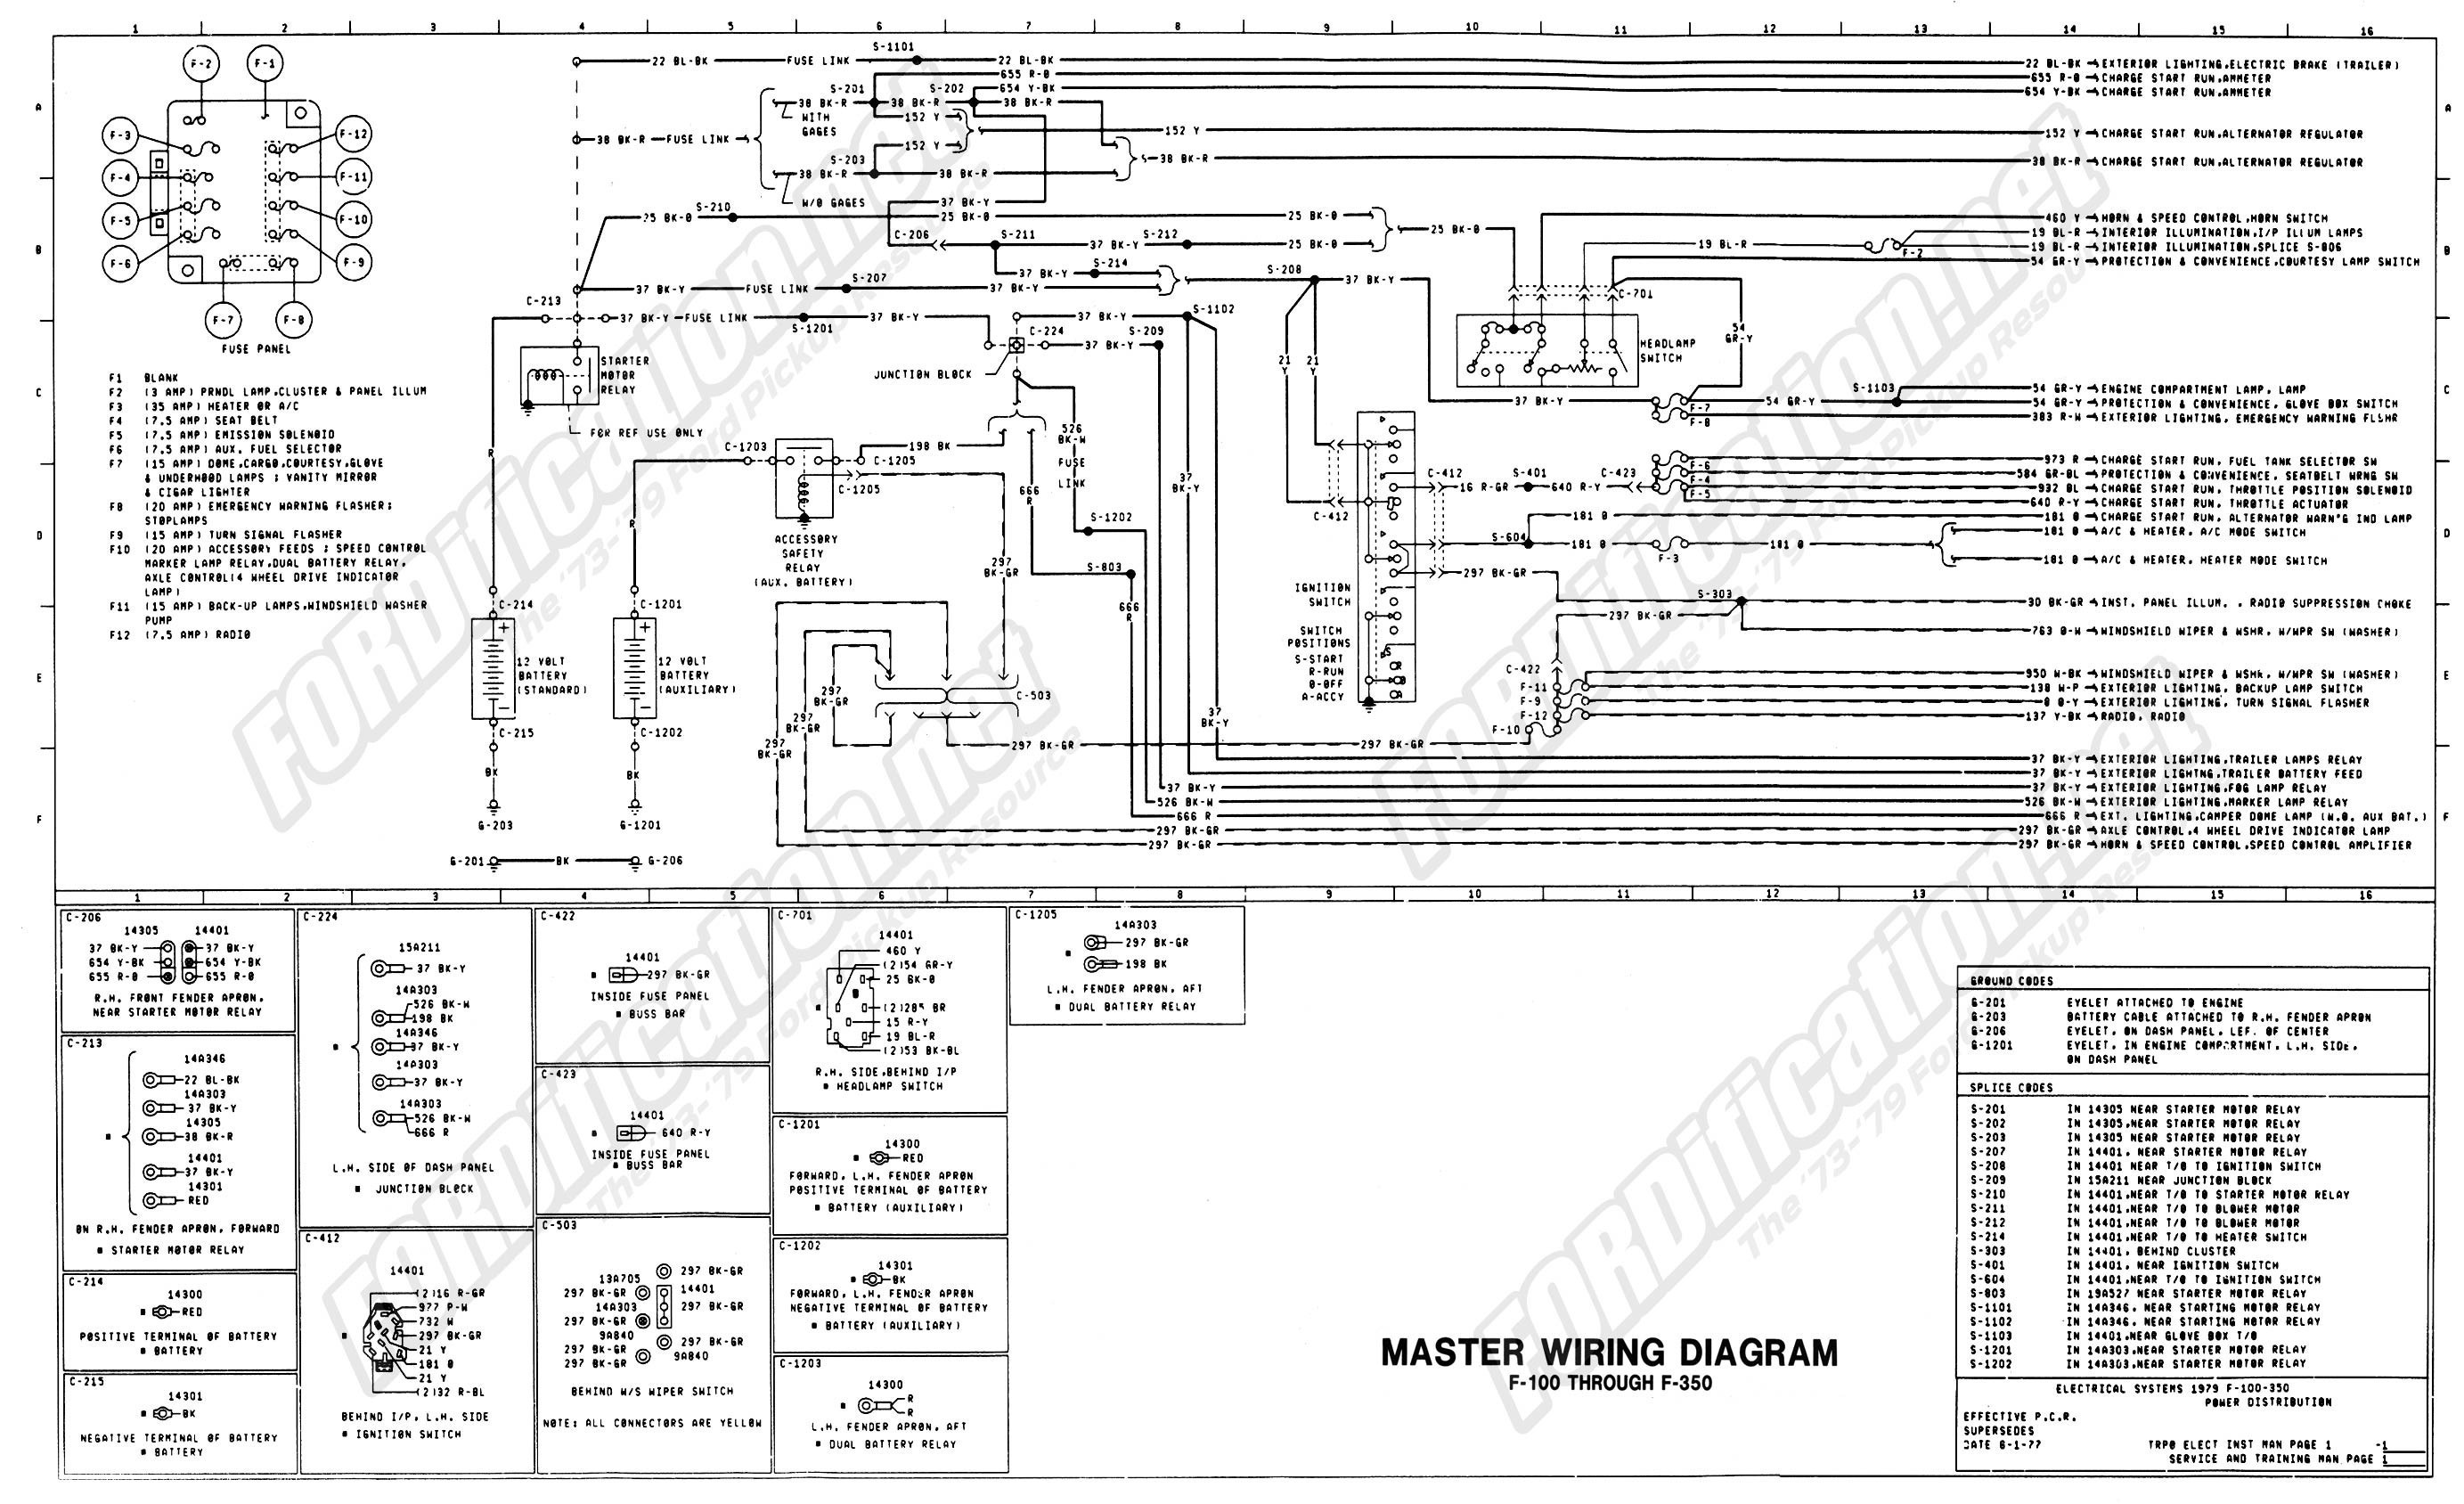 Unique J1708 Wiring Diagram International 9200 Ornament - Electrical ...